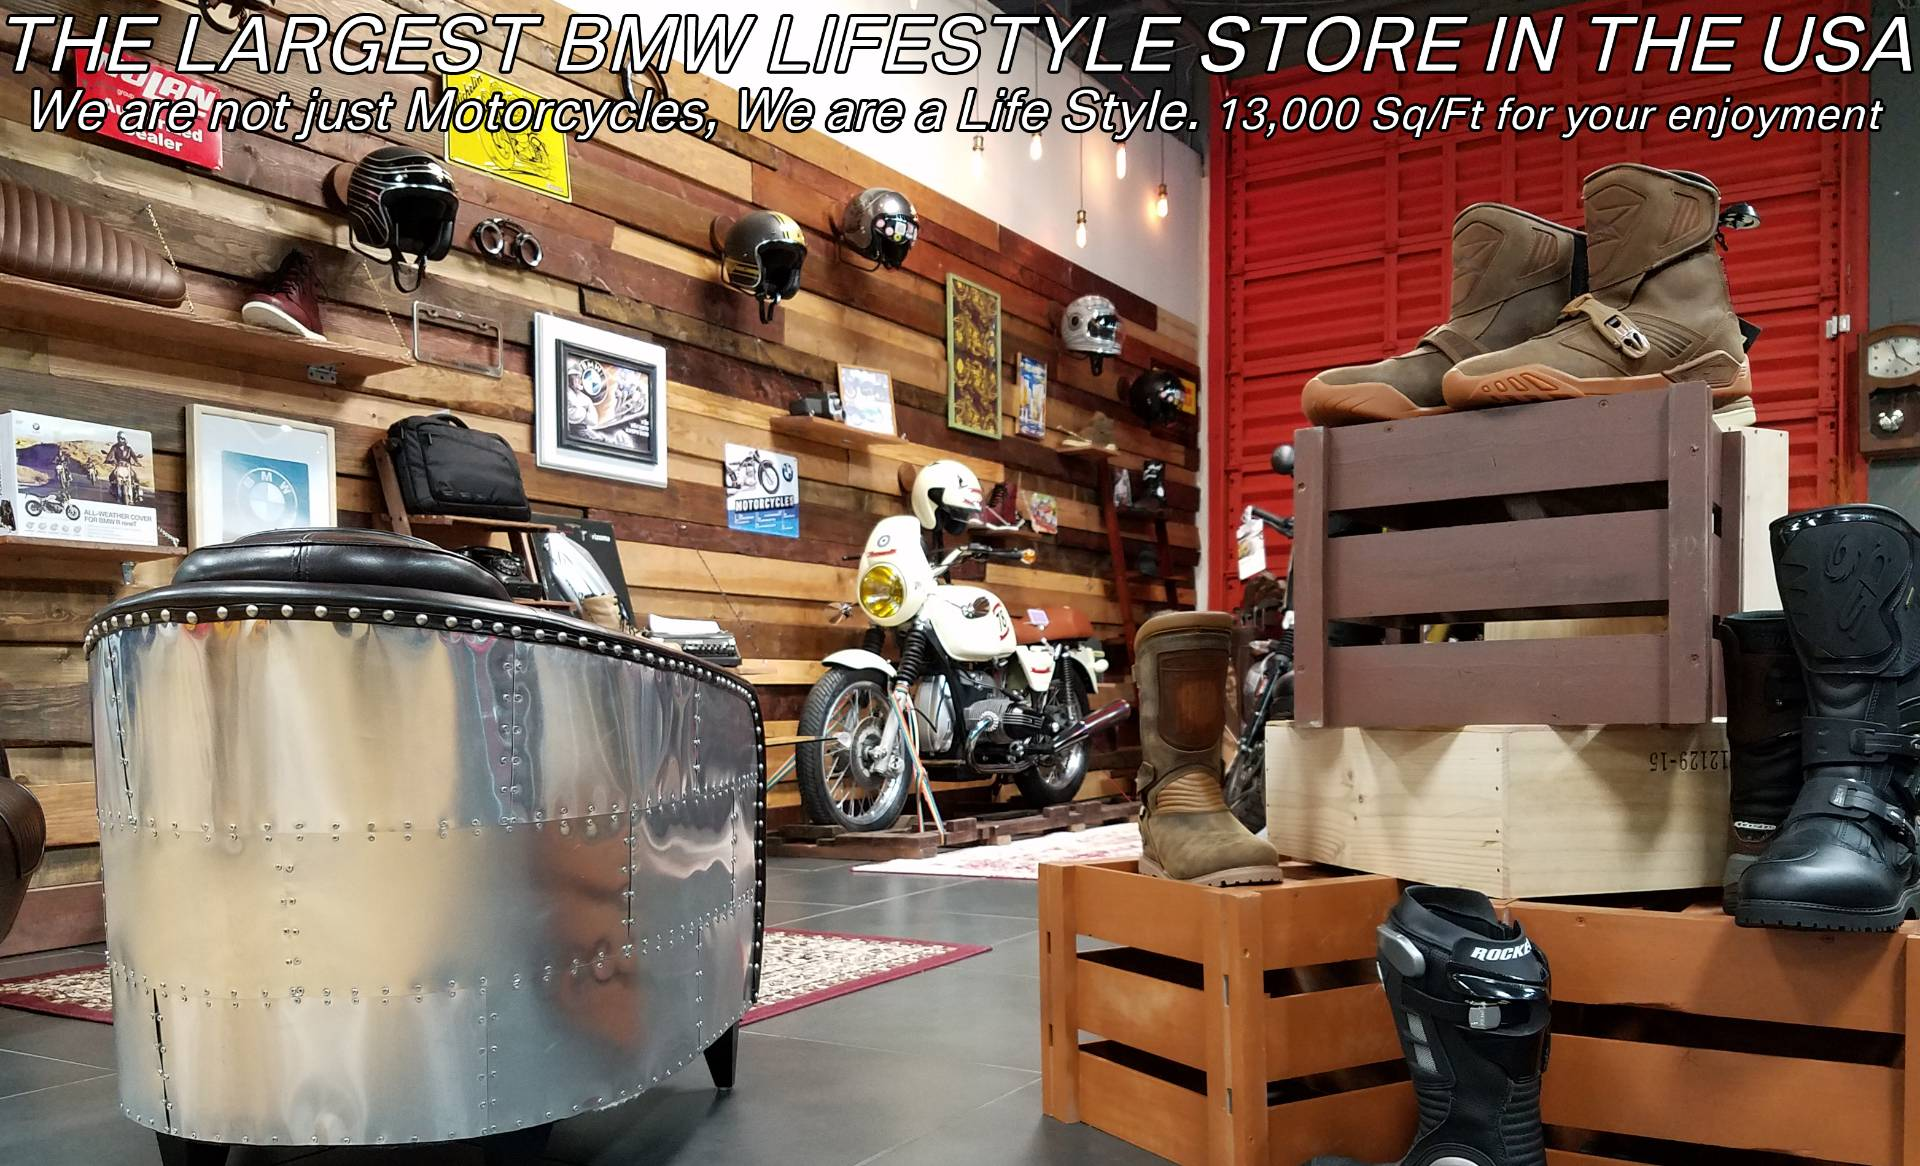 New 2019 BMW R nine T for sale, BMW R nineT for sale, BMW Motorcycle RnineT, BMW Motorcycles of Miami, Motorcycles of Miami, Motorcycles Miami - Photo 33